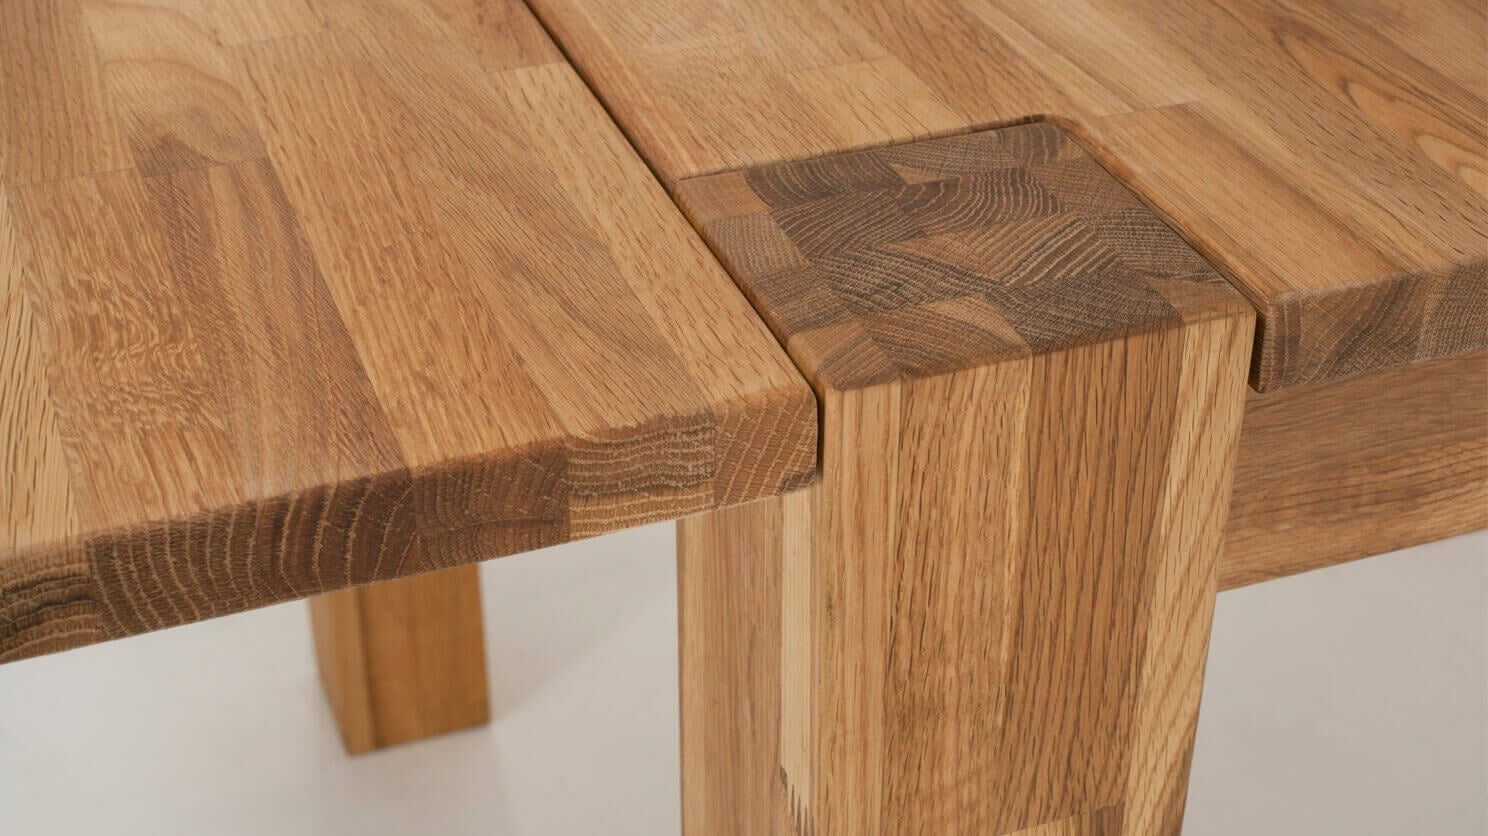 7050 347 8 dining tables harvest dining table detail 02 1